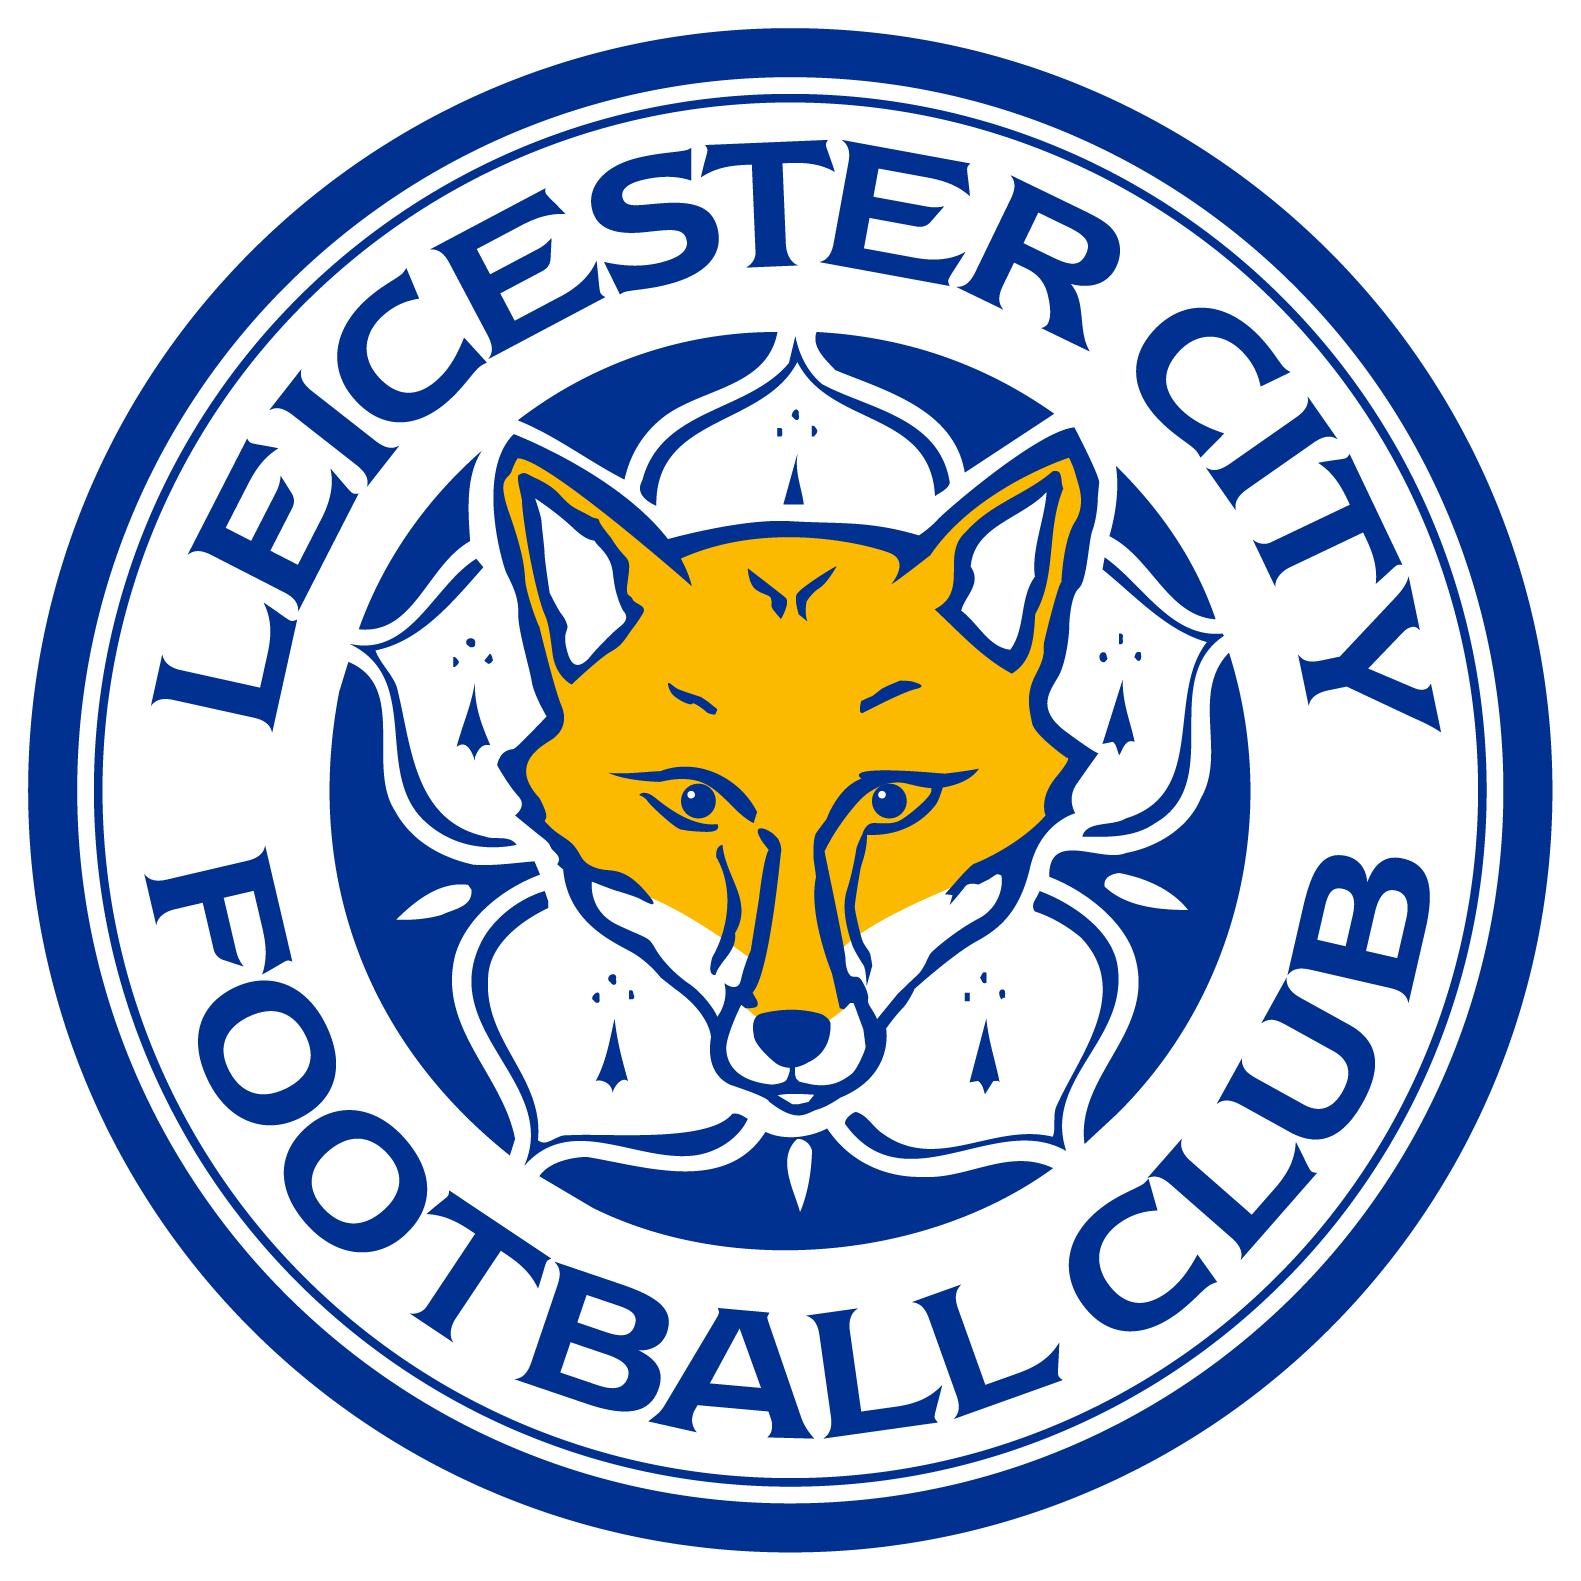 LCFC Foxes